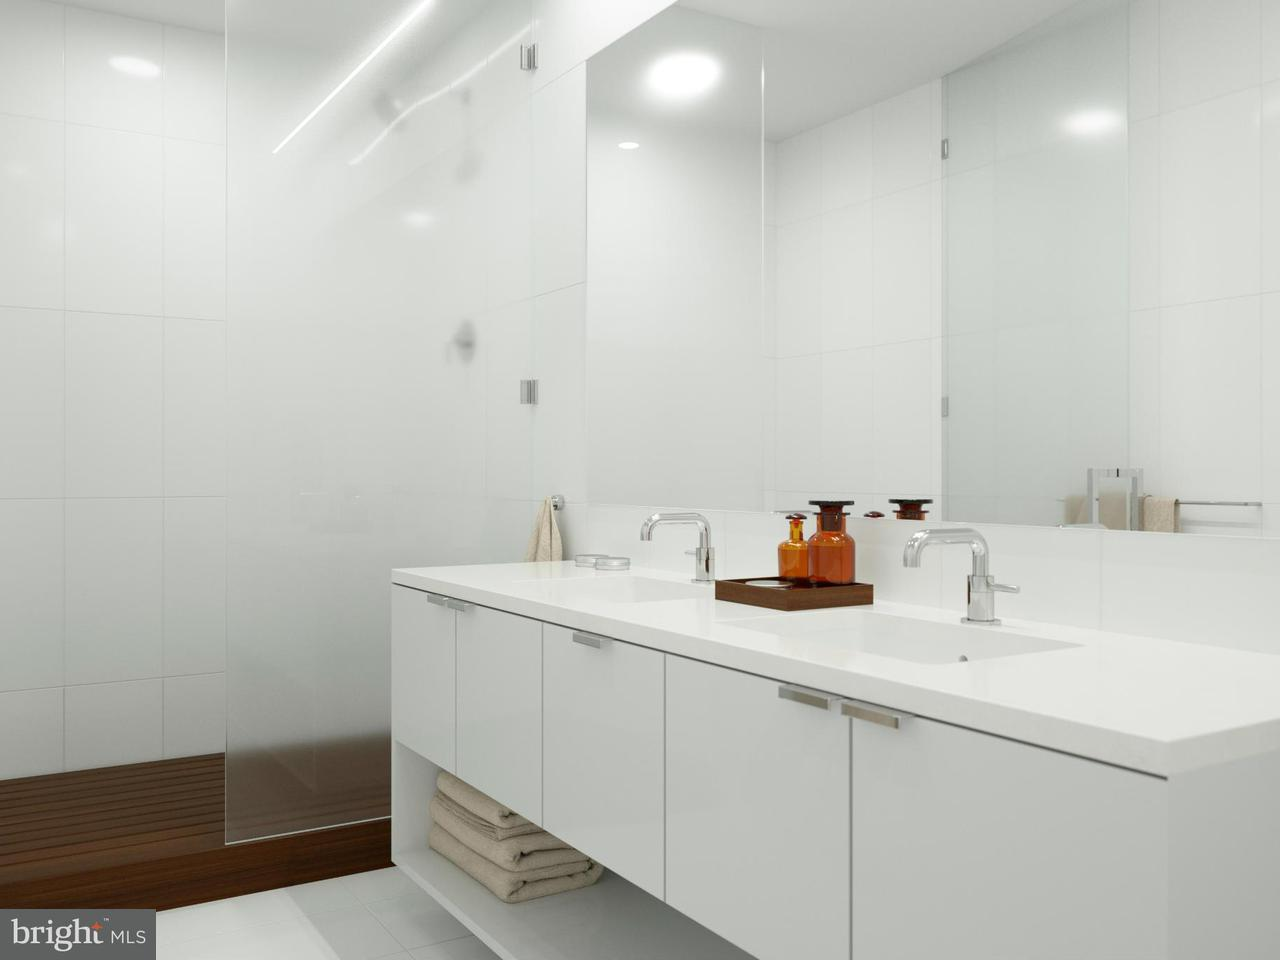 Additional photo for property listing at 1111 24TH ST NW #10E 1111 24TH ST NW #10E Washington, Округ Колумбия 20037 Соединенные Штаты